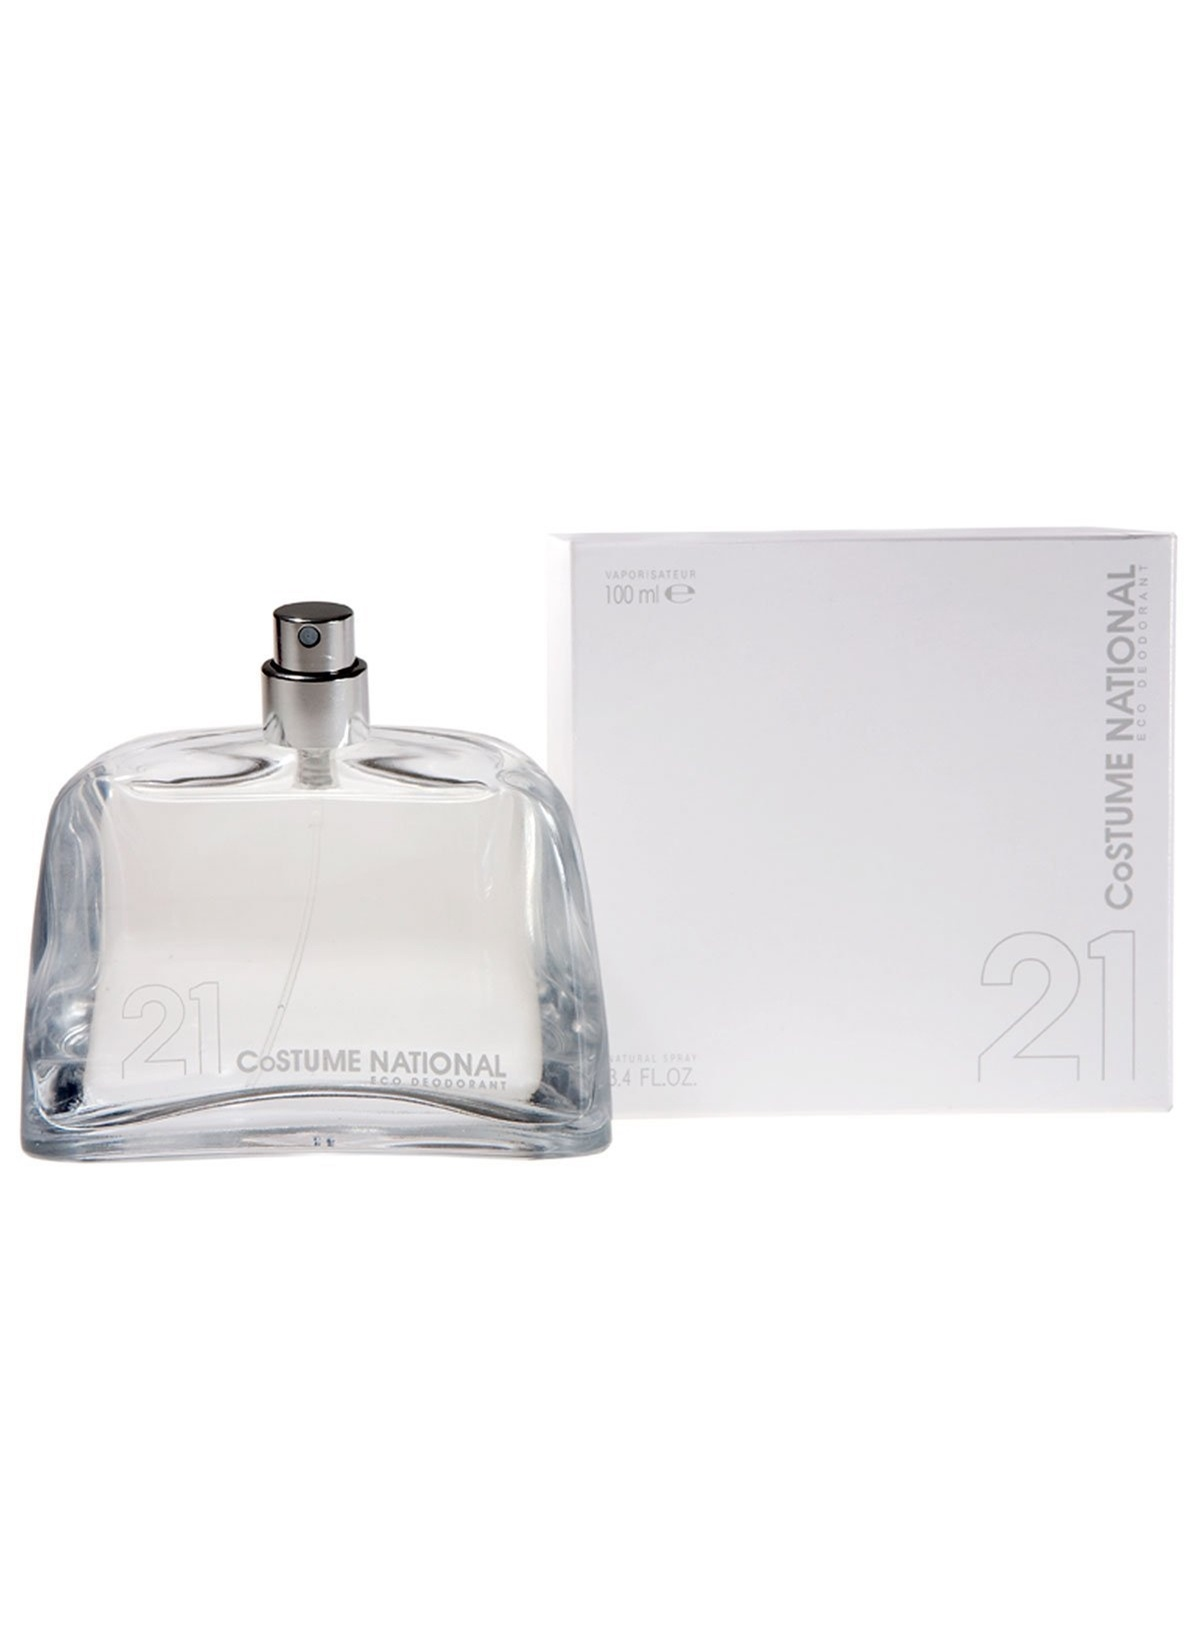 Kadın Costume National 21 Edp 100Ml Parfüm